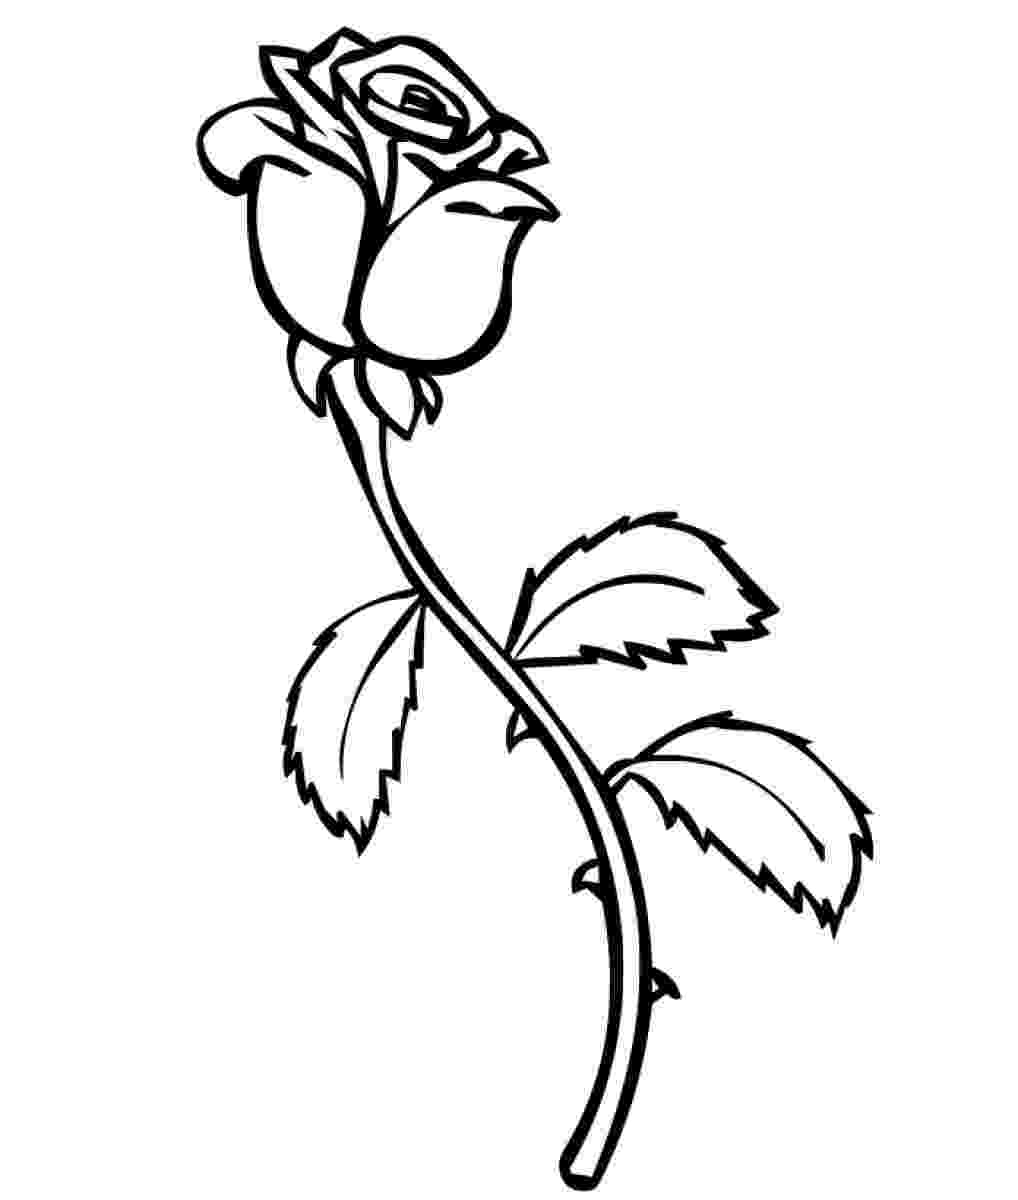 roses coloring pictures free printable roses coloring pages for kids coloring pictures roses 1 2